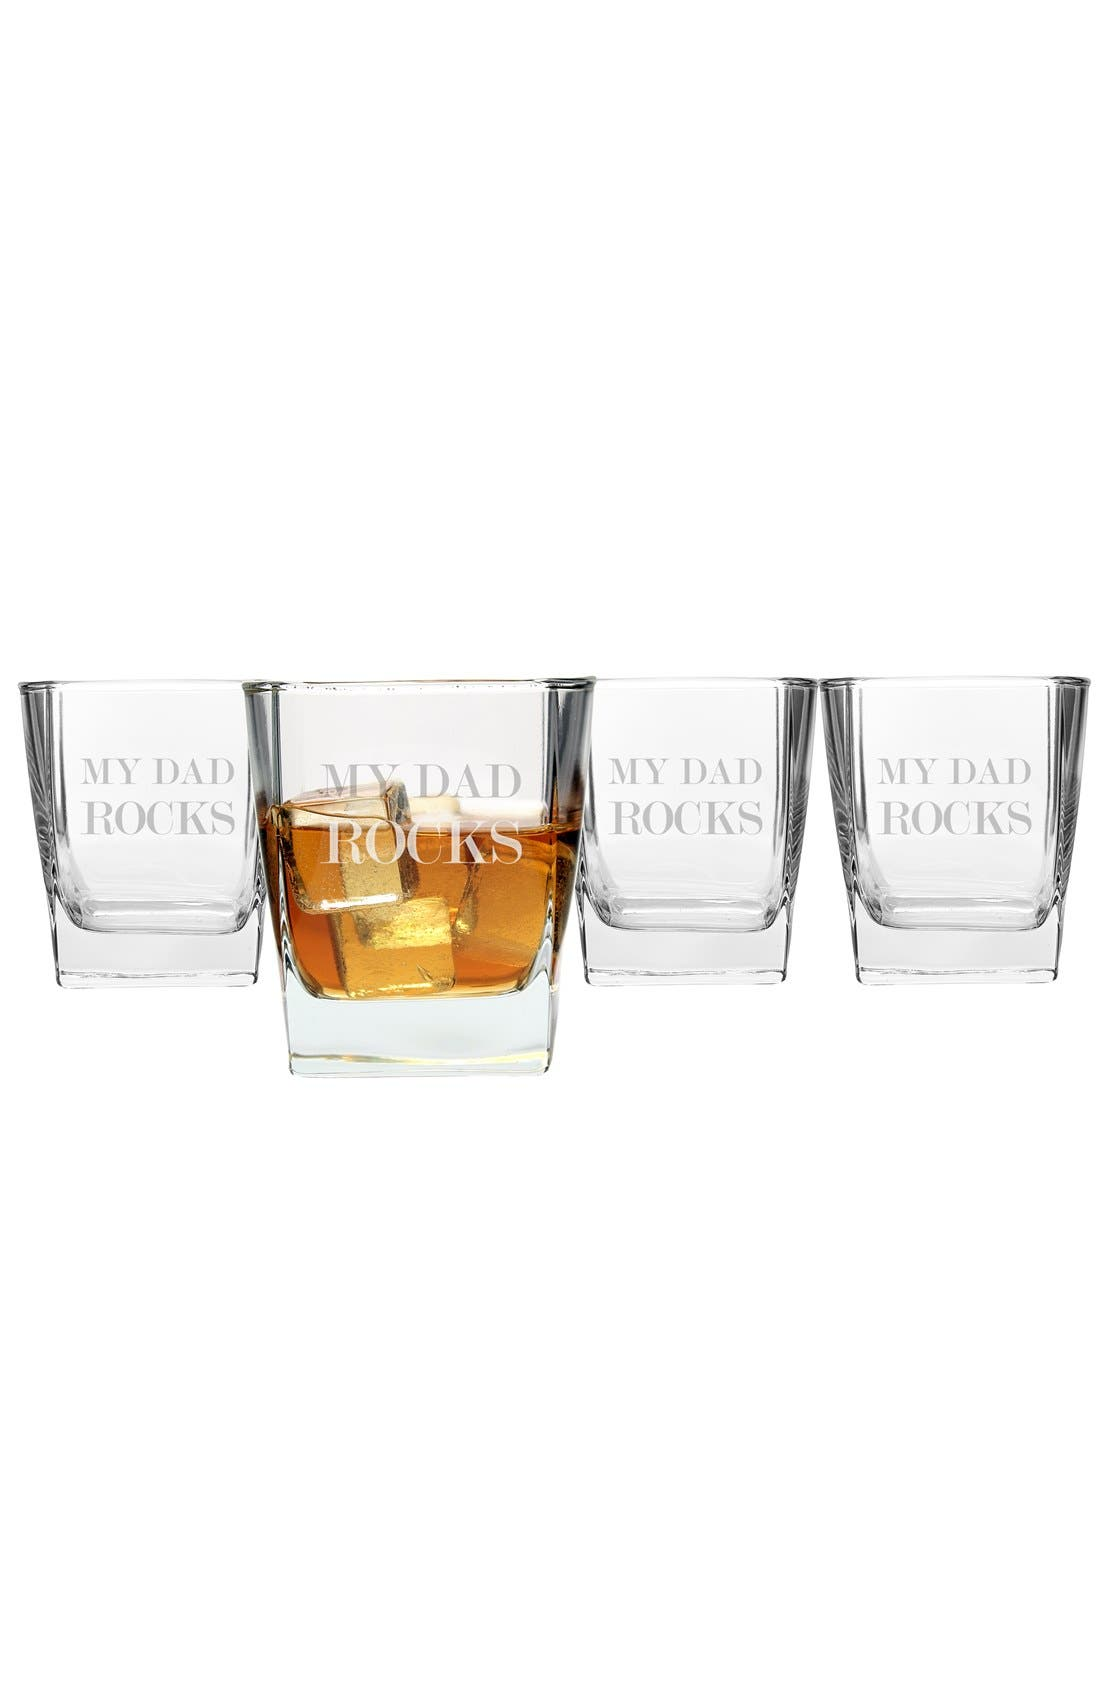 'My Dad Rocks' Glasses (Set of 4)